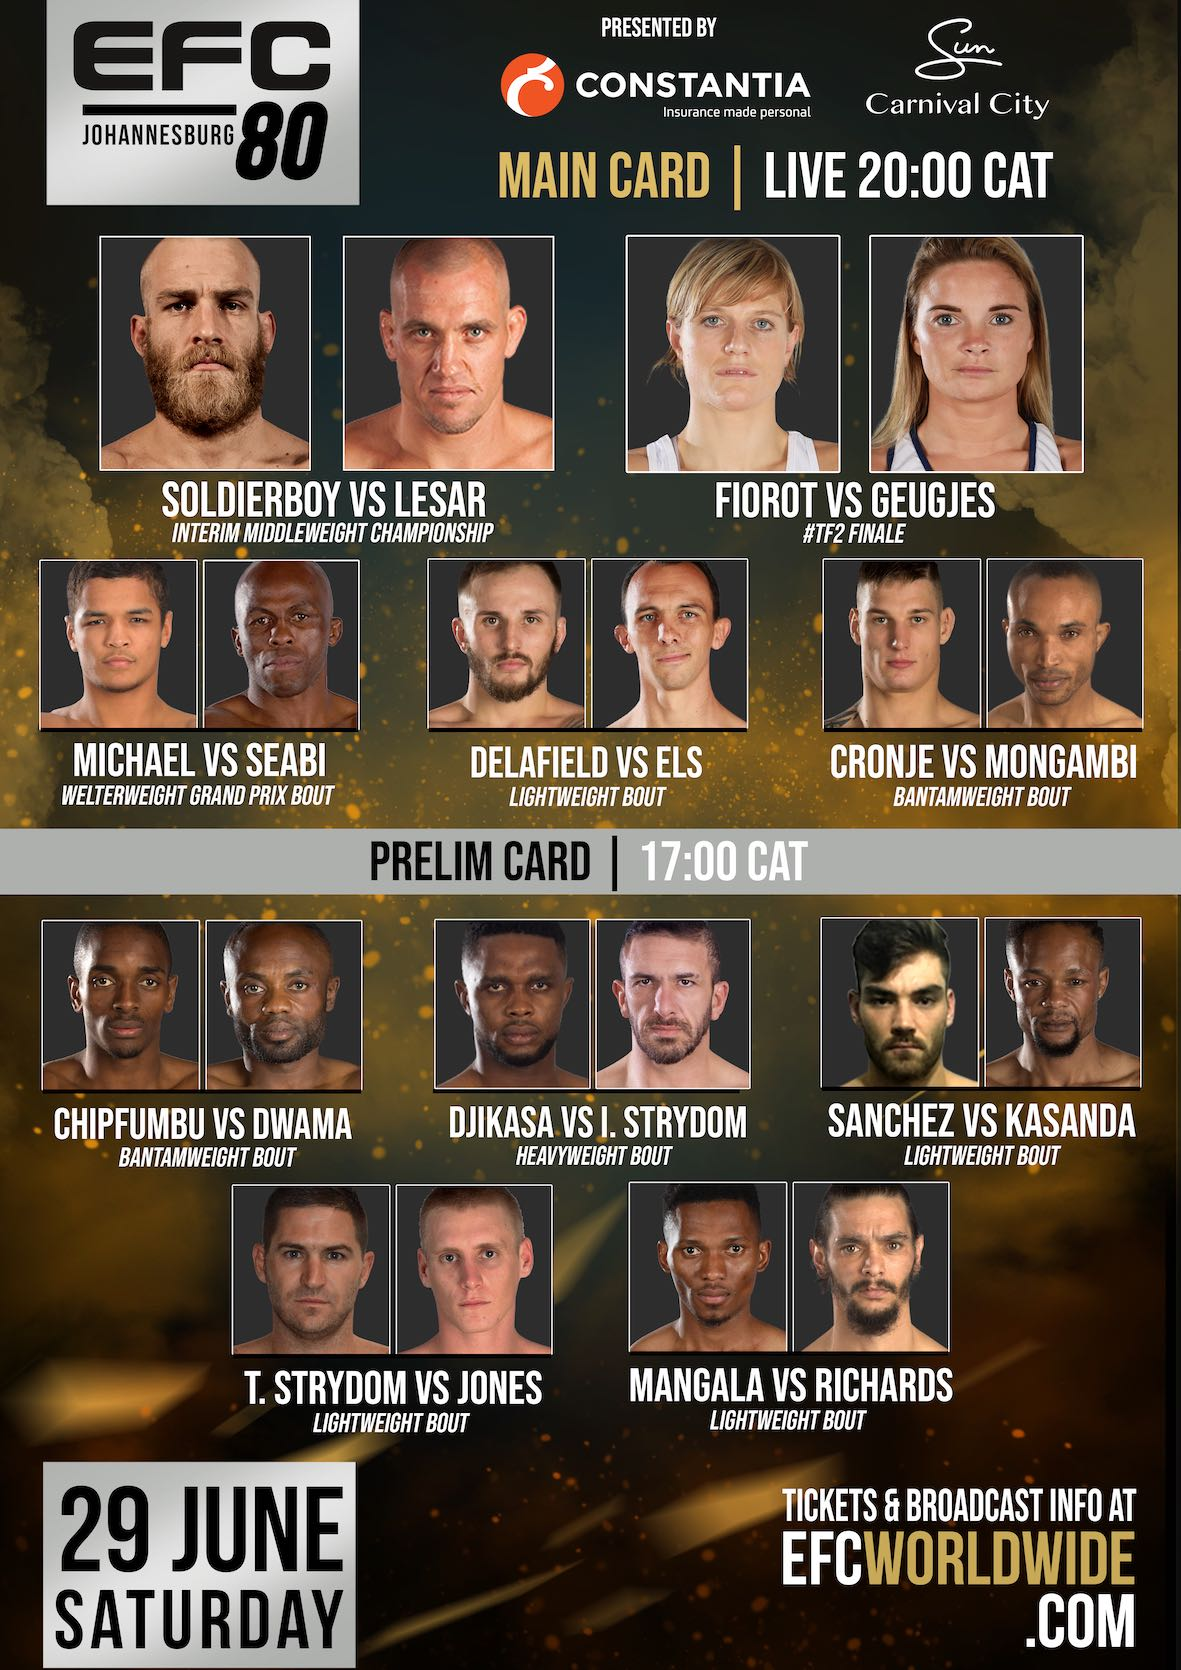 EFC 80 Fight Card featuring 10 exciting MMA bouts